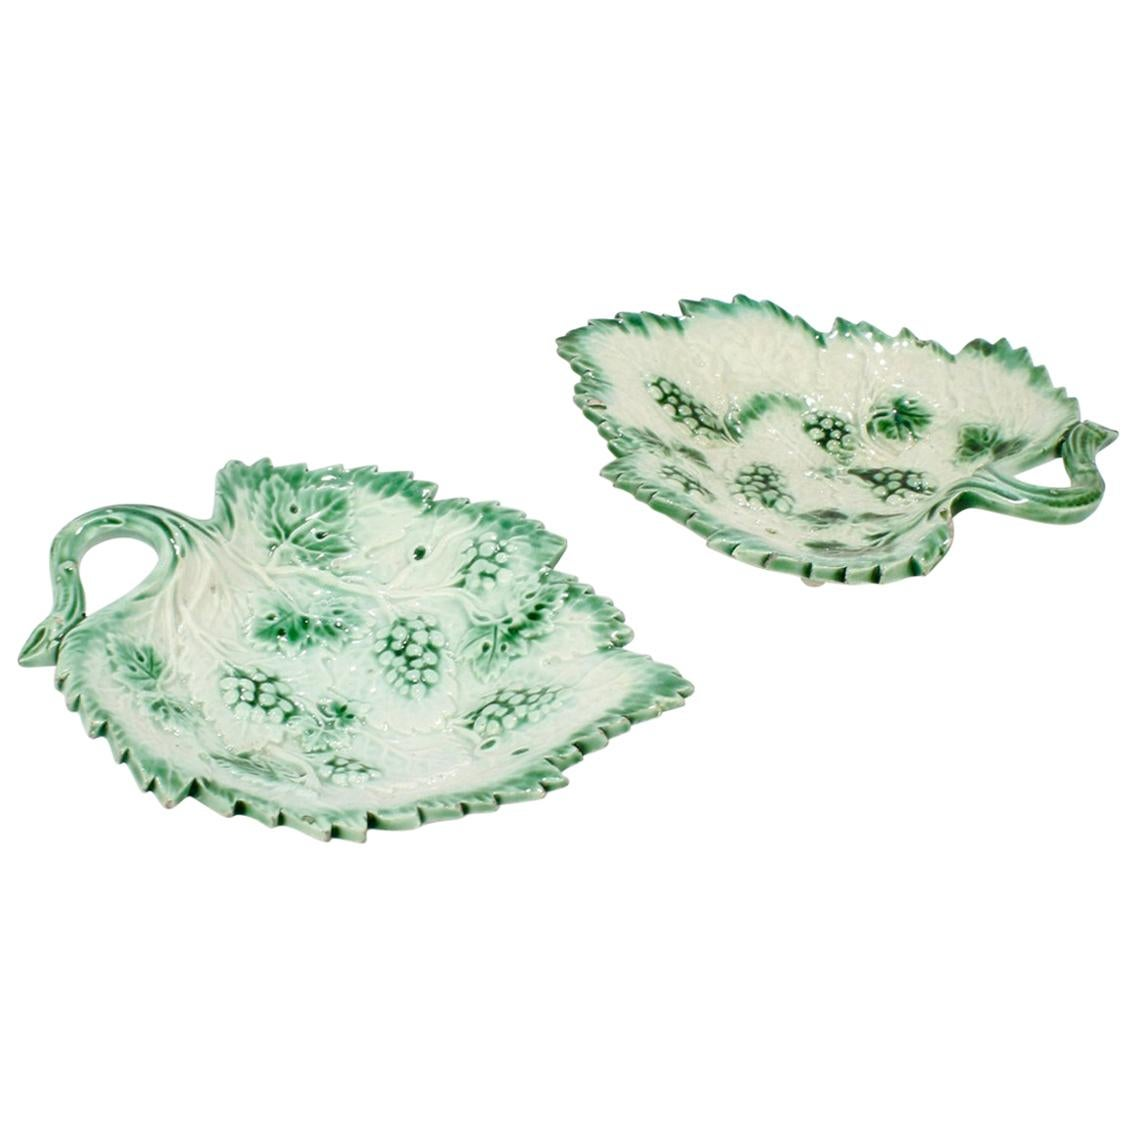 Pair of Staffordshire Pearlware Green Border Leaf Form Pickle Dishes